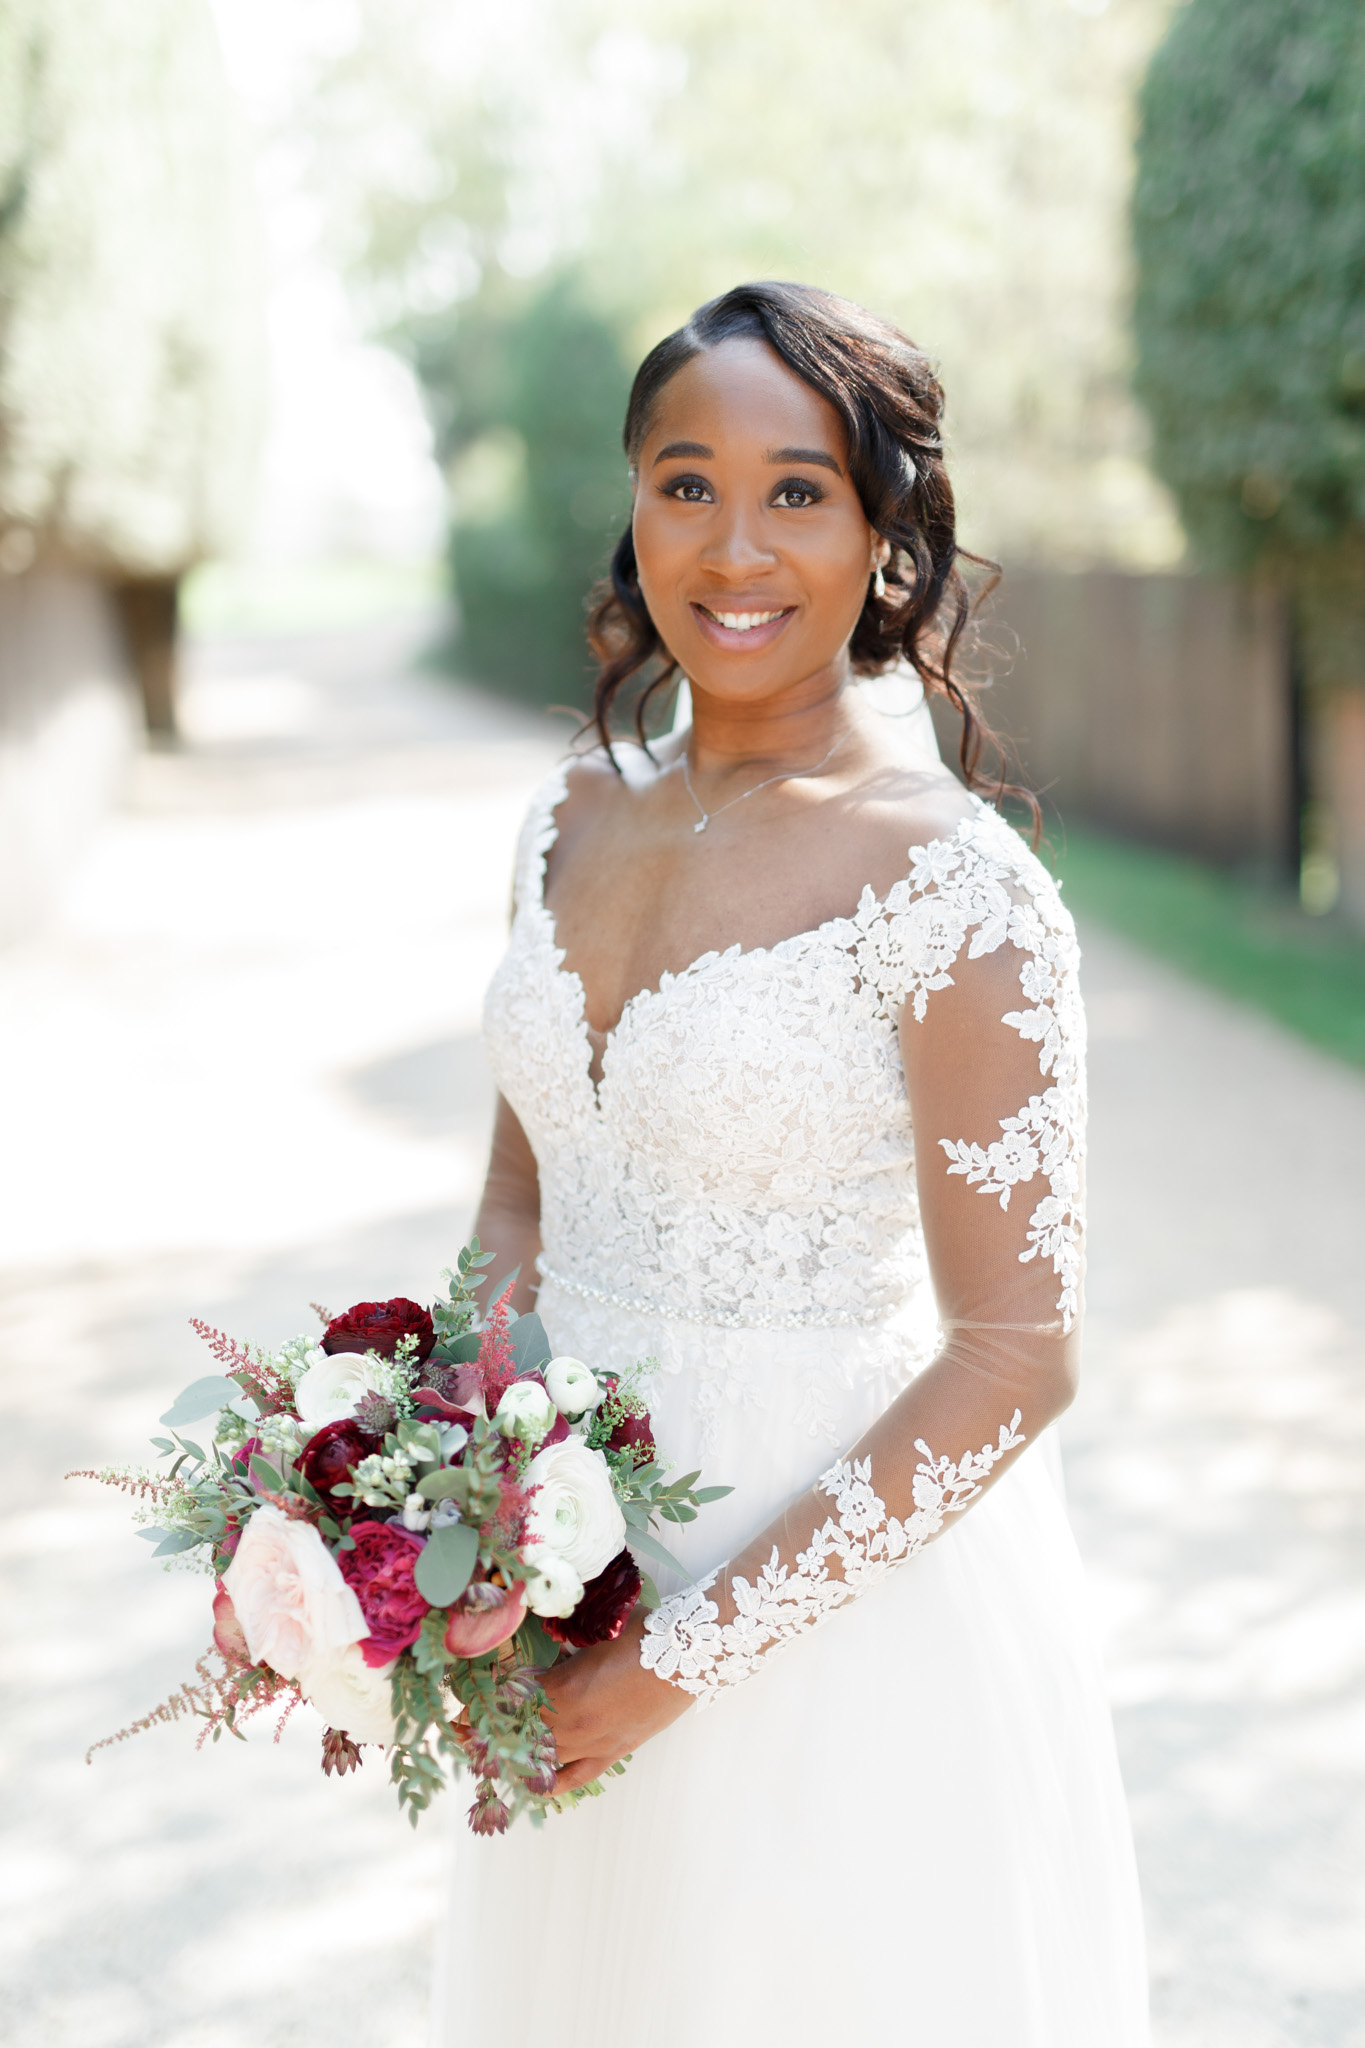 ryan thomas wedding bride holding bouquet